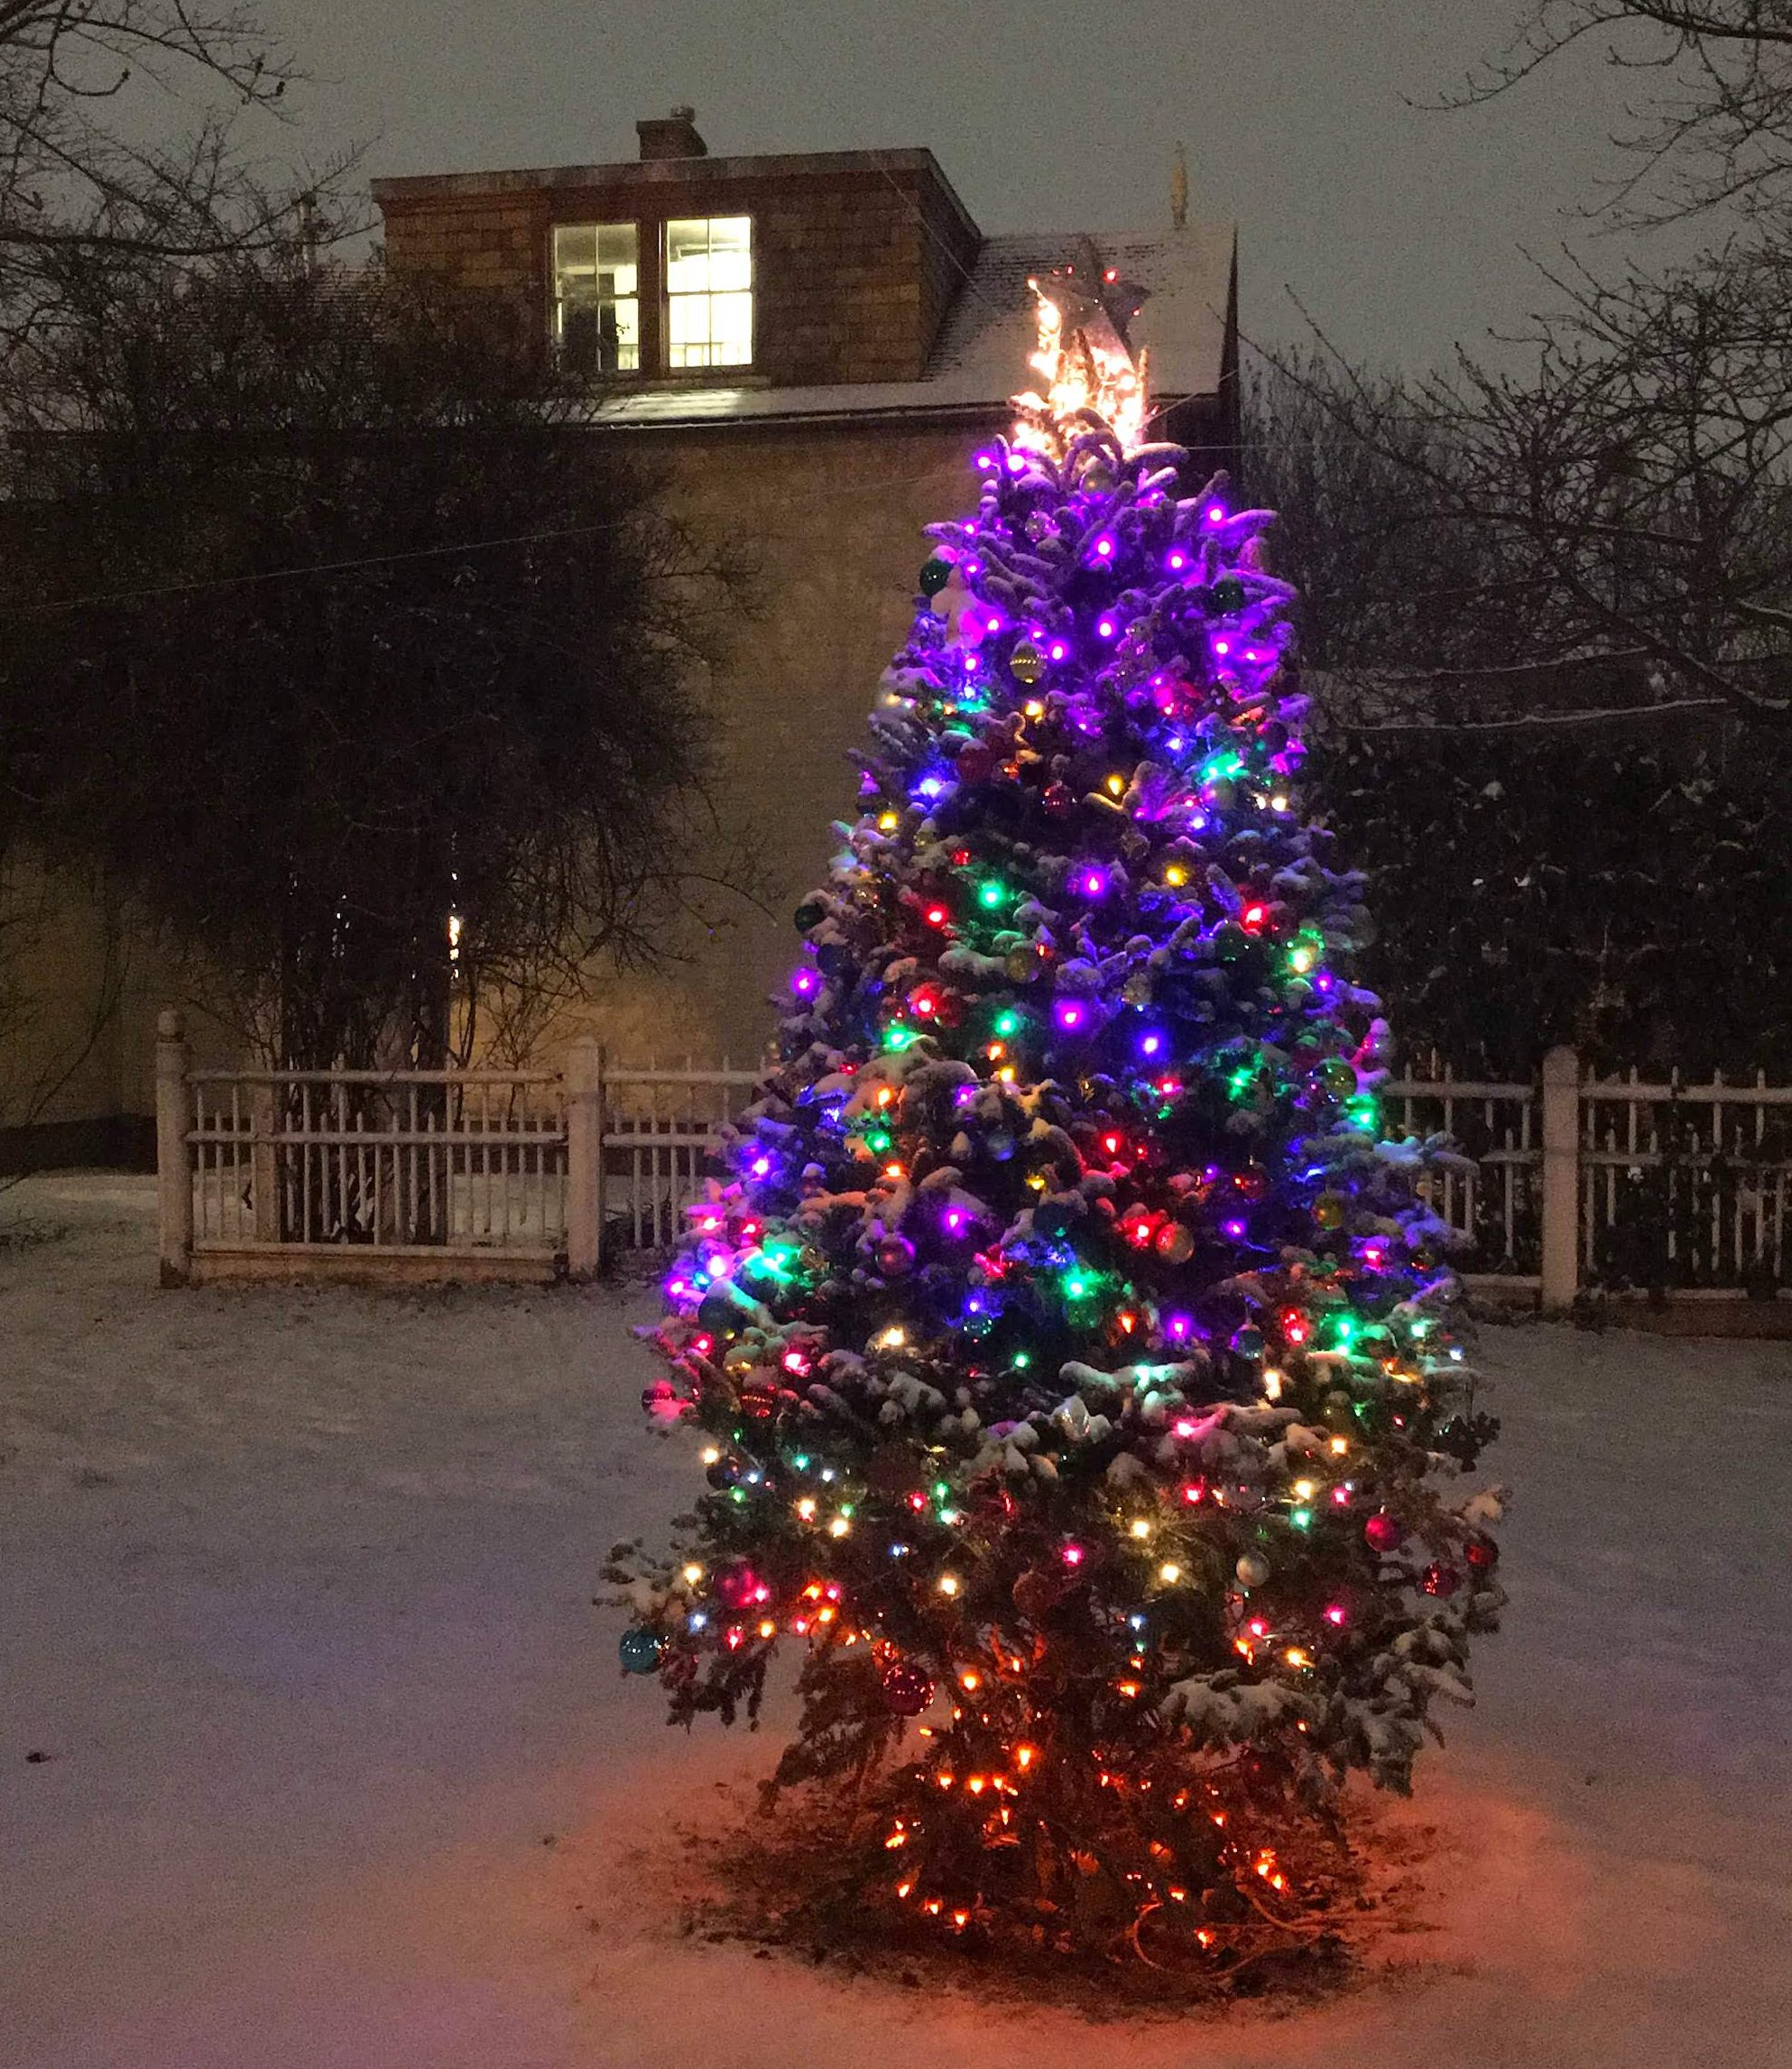 20 holiday trees in NYC that are not at Rockefeller Center